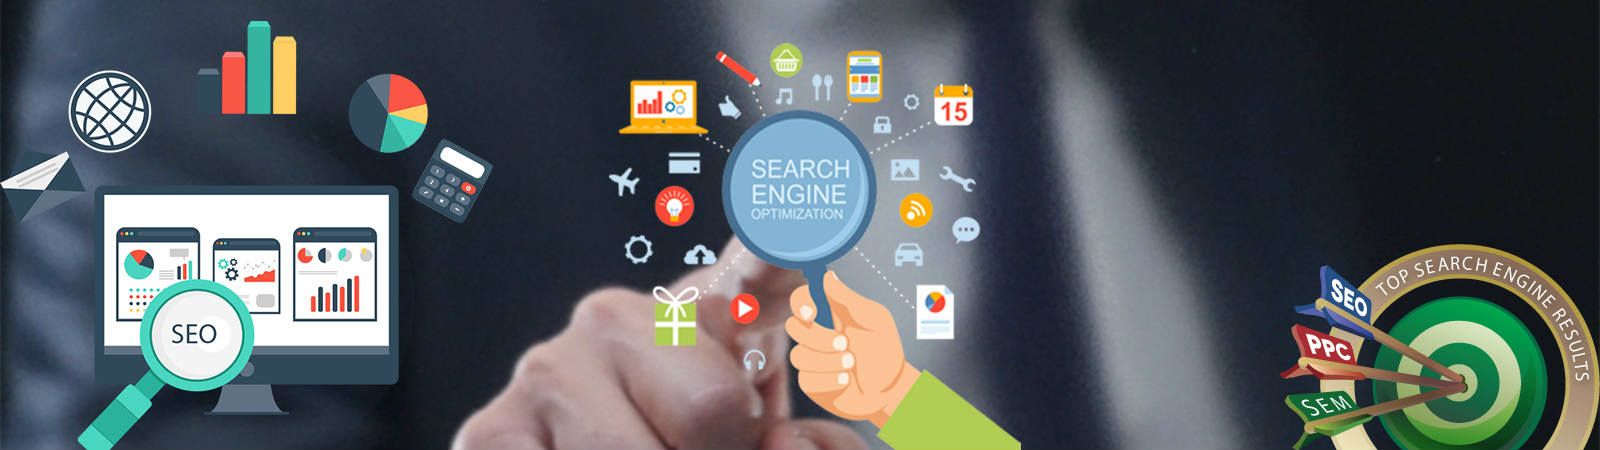 SEO Company India & USA | Best Search Engine Optimization Services Provider